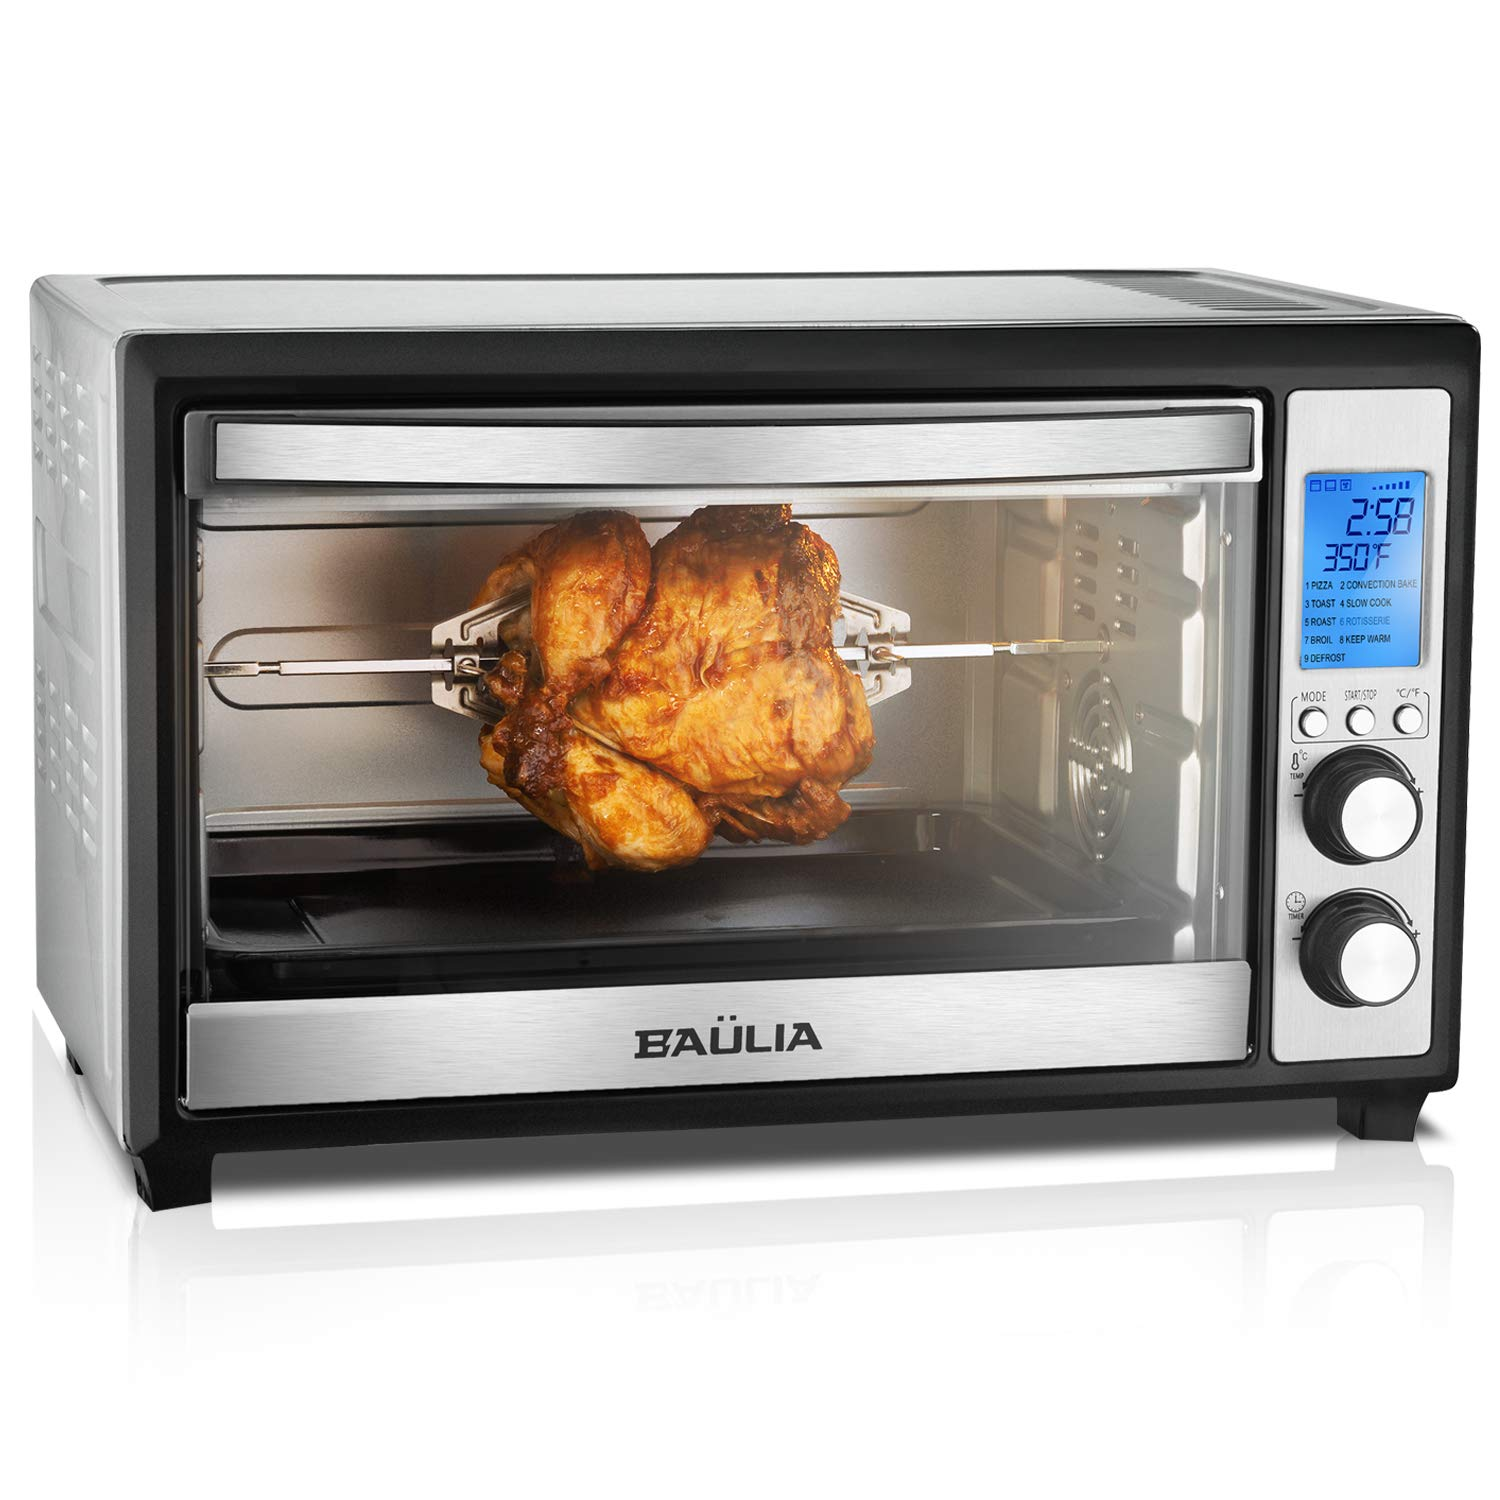 Baulia TO809 Digital Countertop Toaster Oven, 12 Inch Pizza 33 Liter Compact Convection Oven   Stainless Steel Even Heat Technology   9 Pre-programmed One-Touch Functions, 6-Slice, 1600W